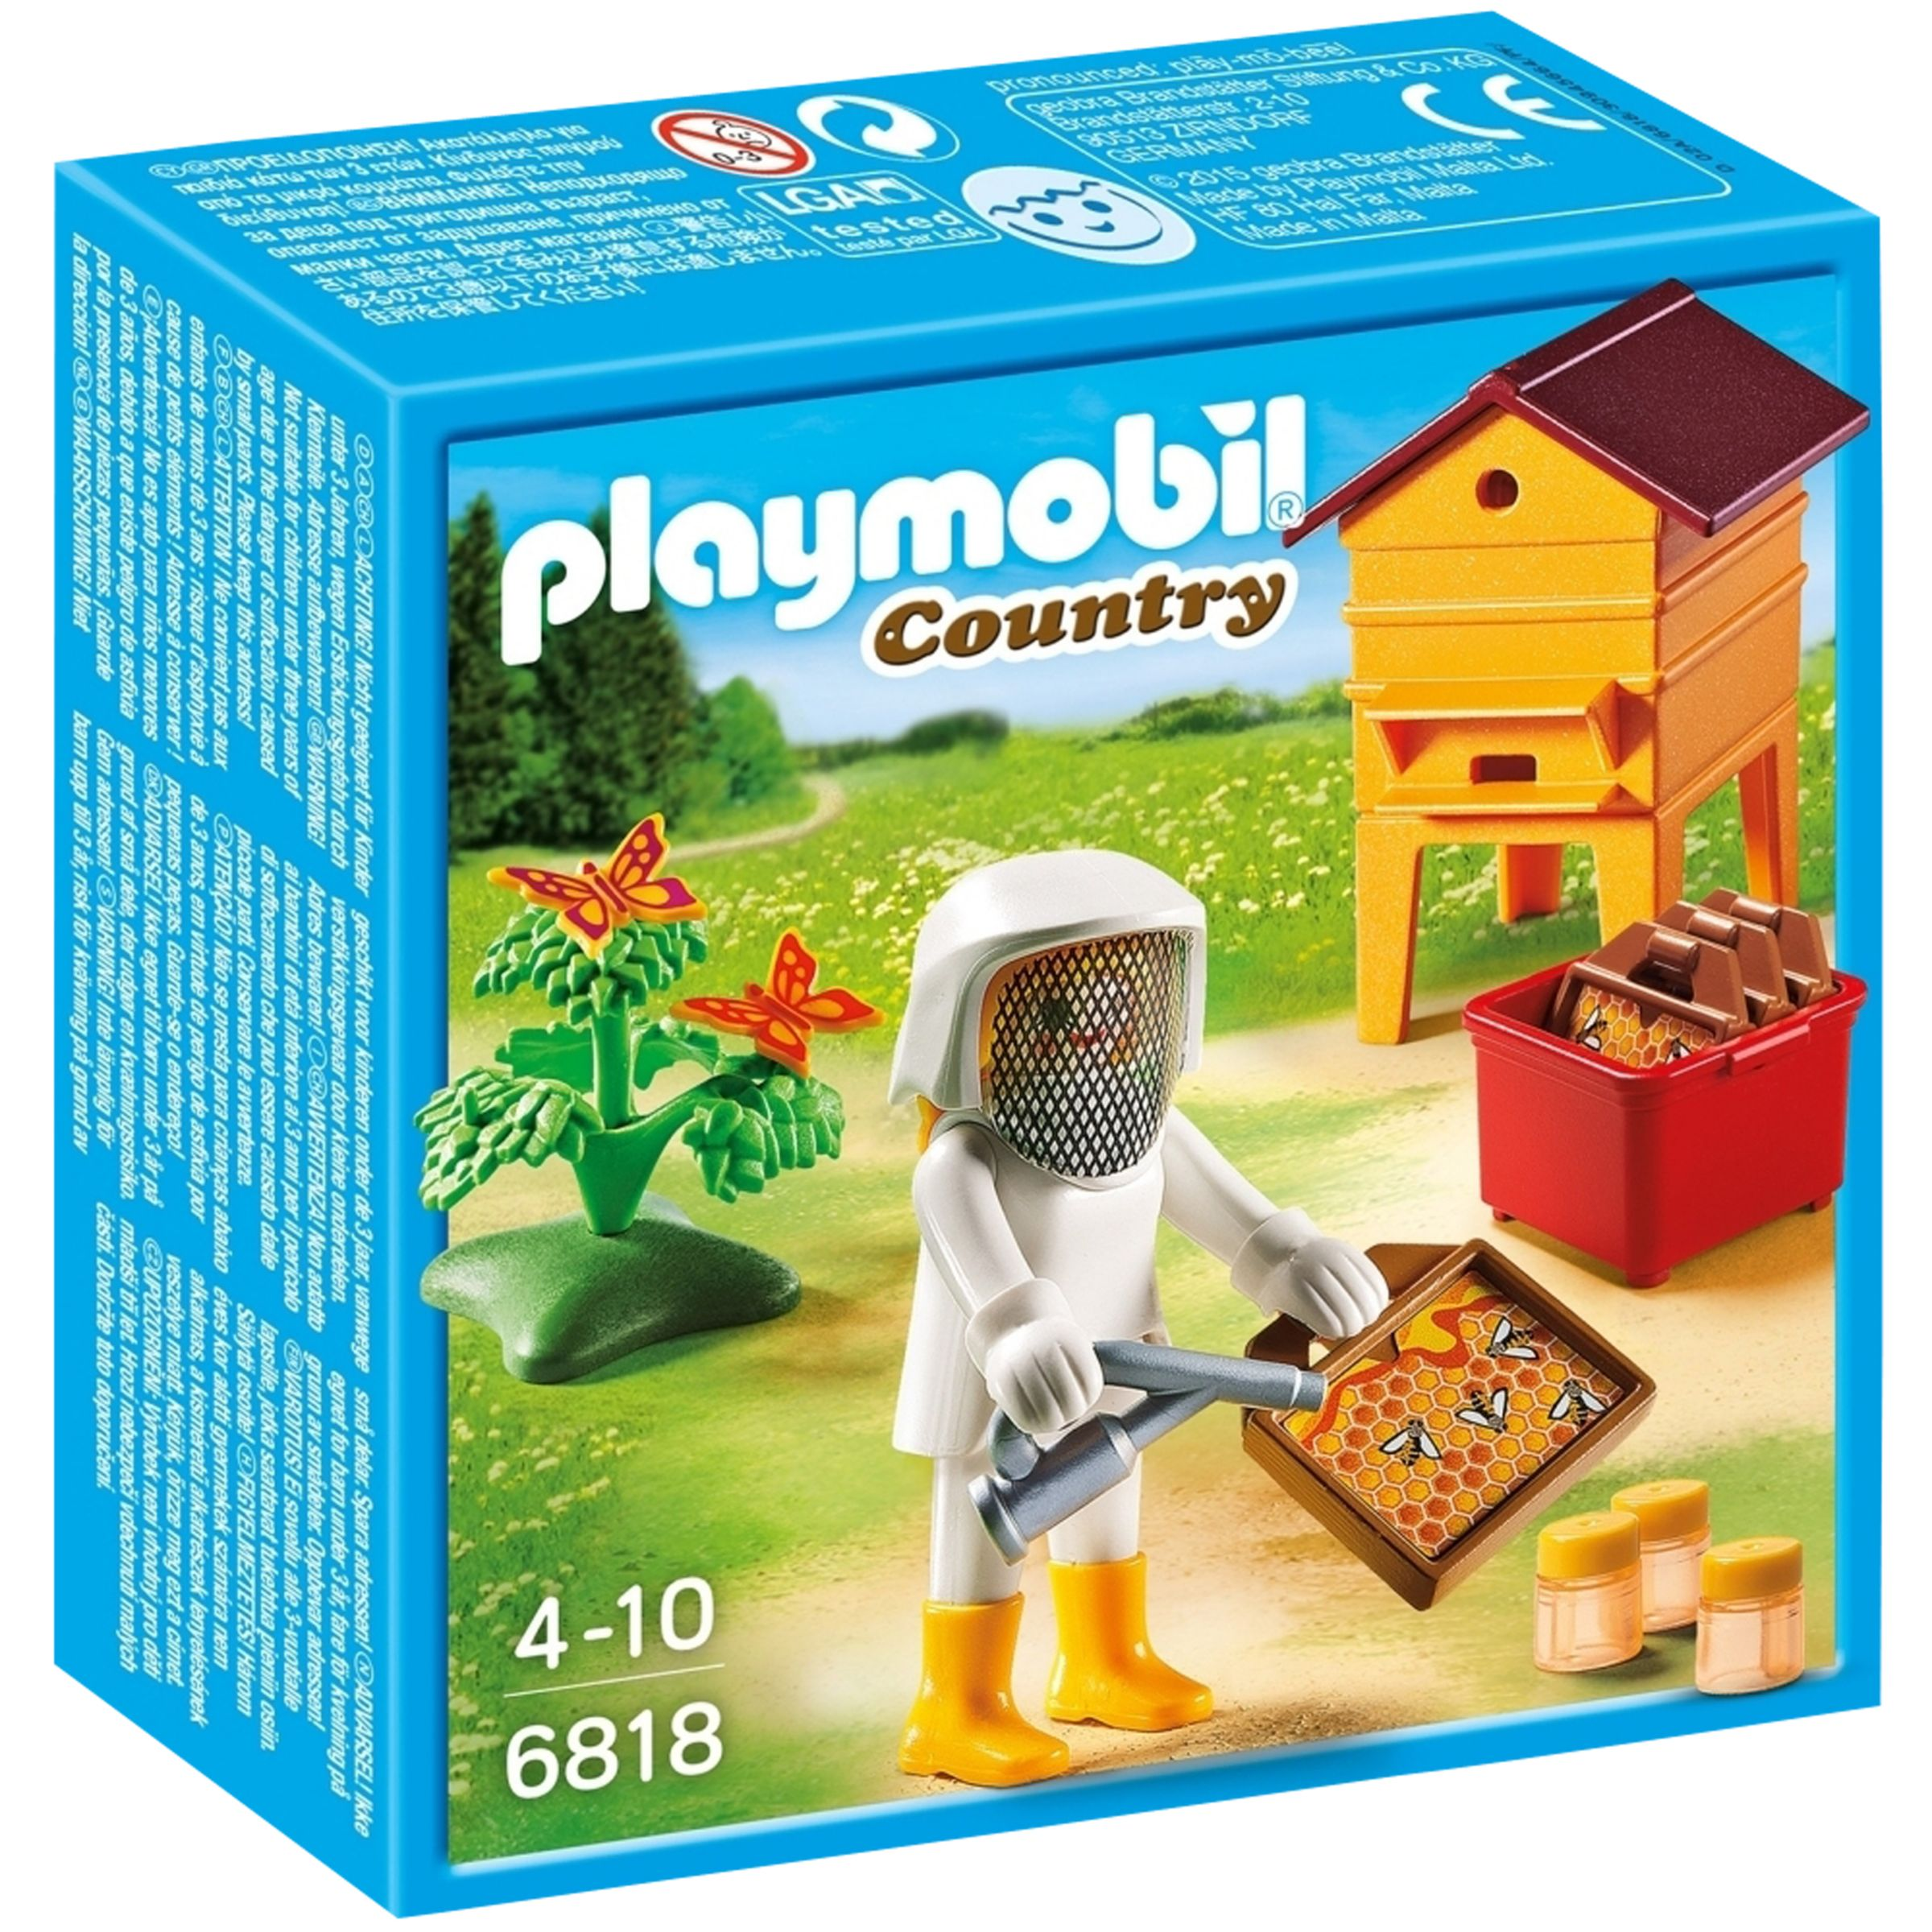 PLAYMOBIL Playmobil Country Beekeeper and Hive